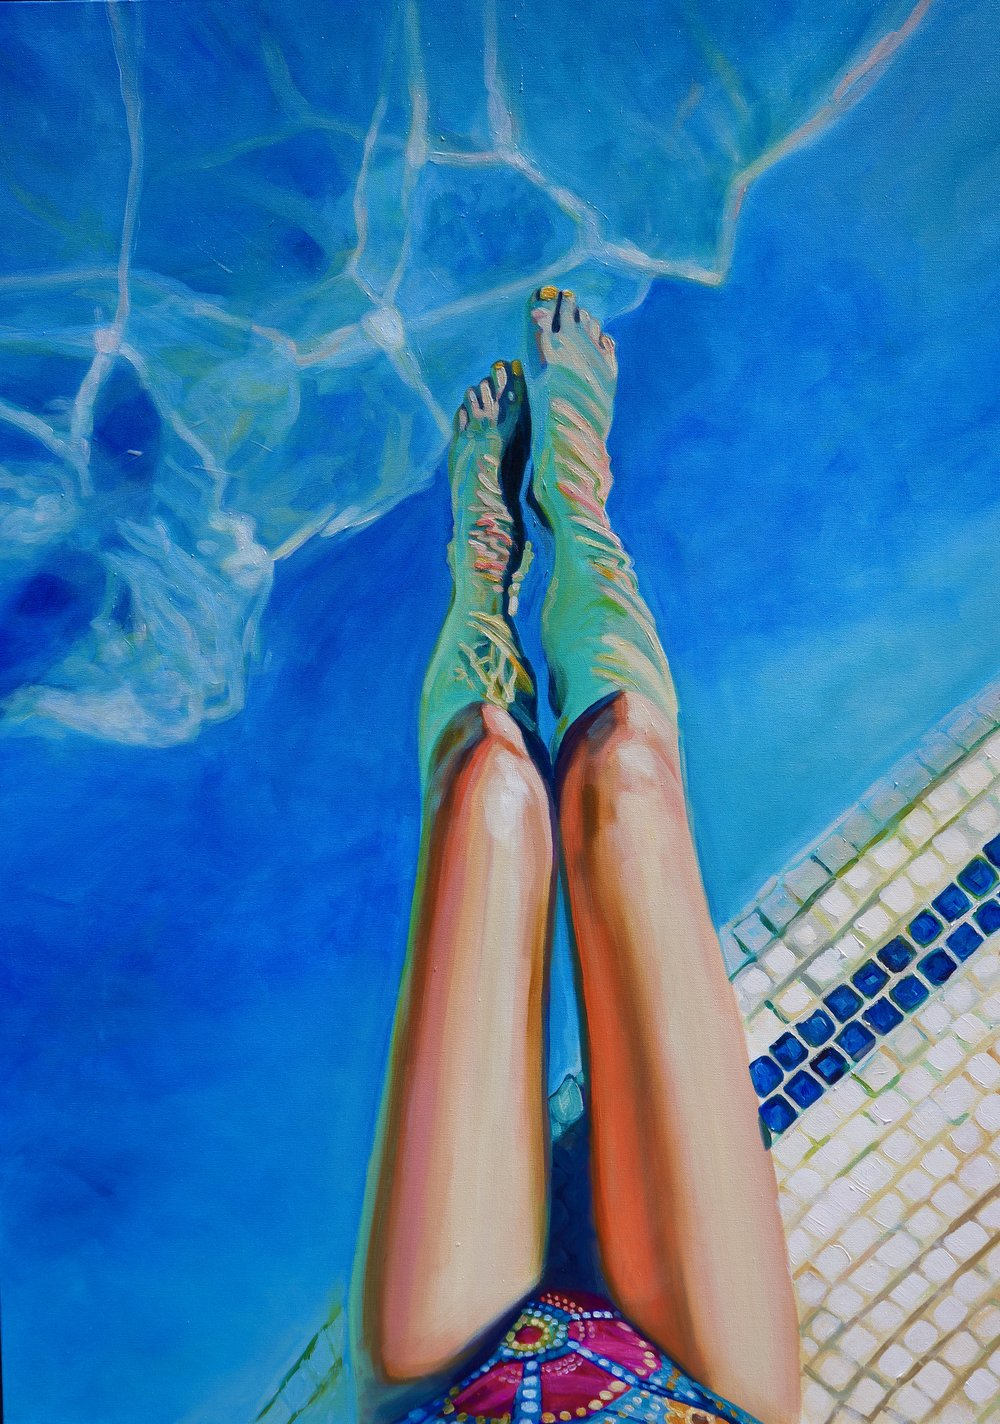 SWIMMING POOL  36X48 IN  $6,900  GICLEE PRINTS AVAILABLE IN VARIES SIZES ON PAPER/CANVAS